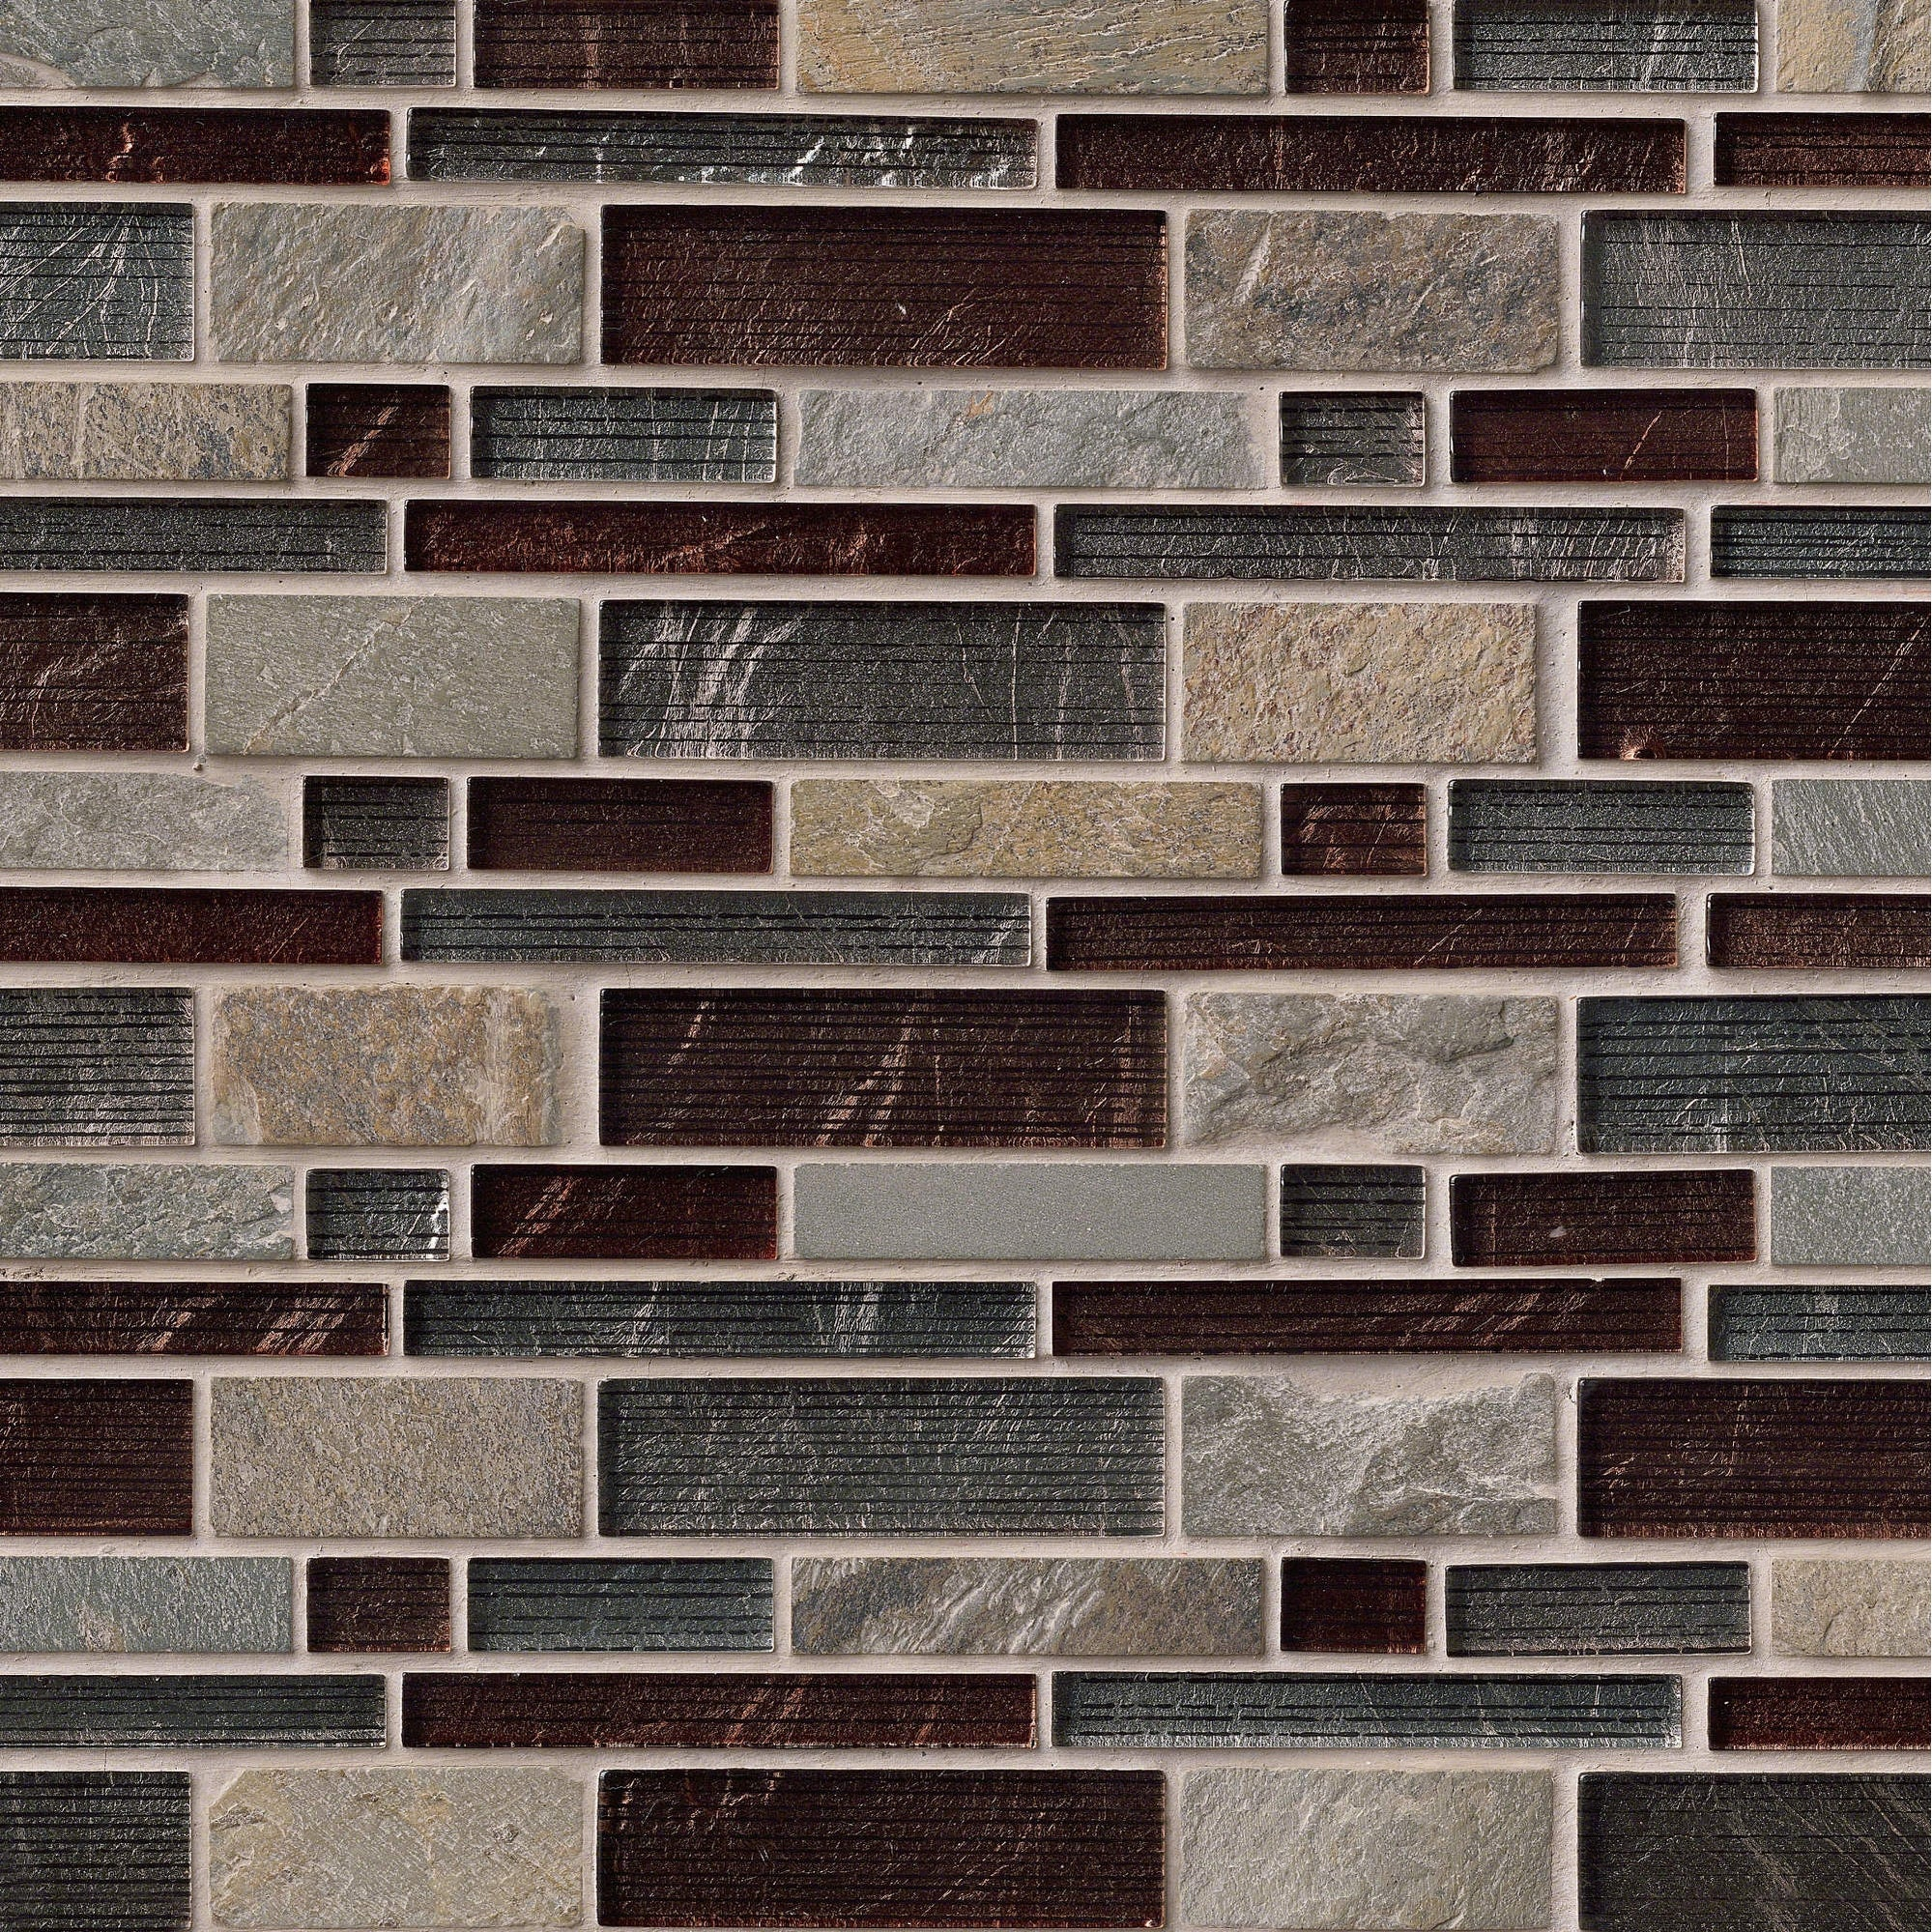 Msi Sglsil Urb8mm 12 X Random Linear Mosaic Wall Tile Textured Stone Imitating Visual Sold By Carton 10 Sf